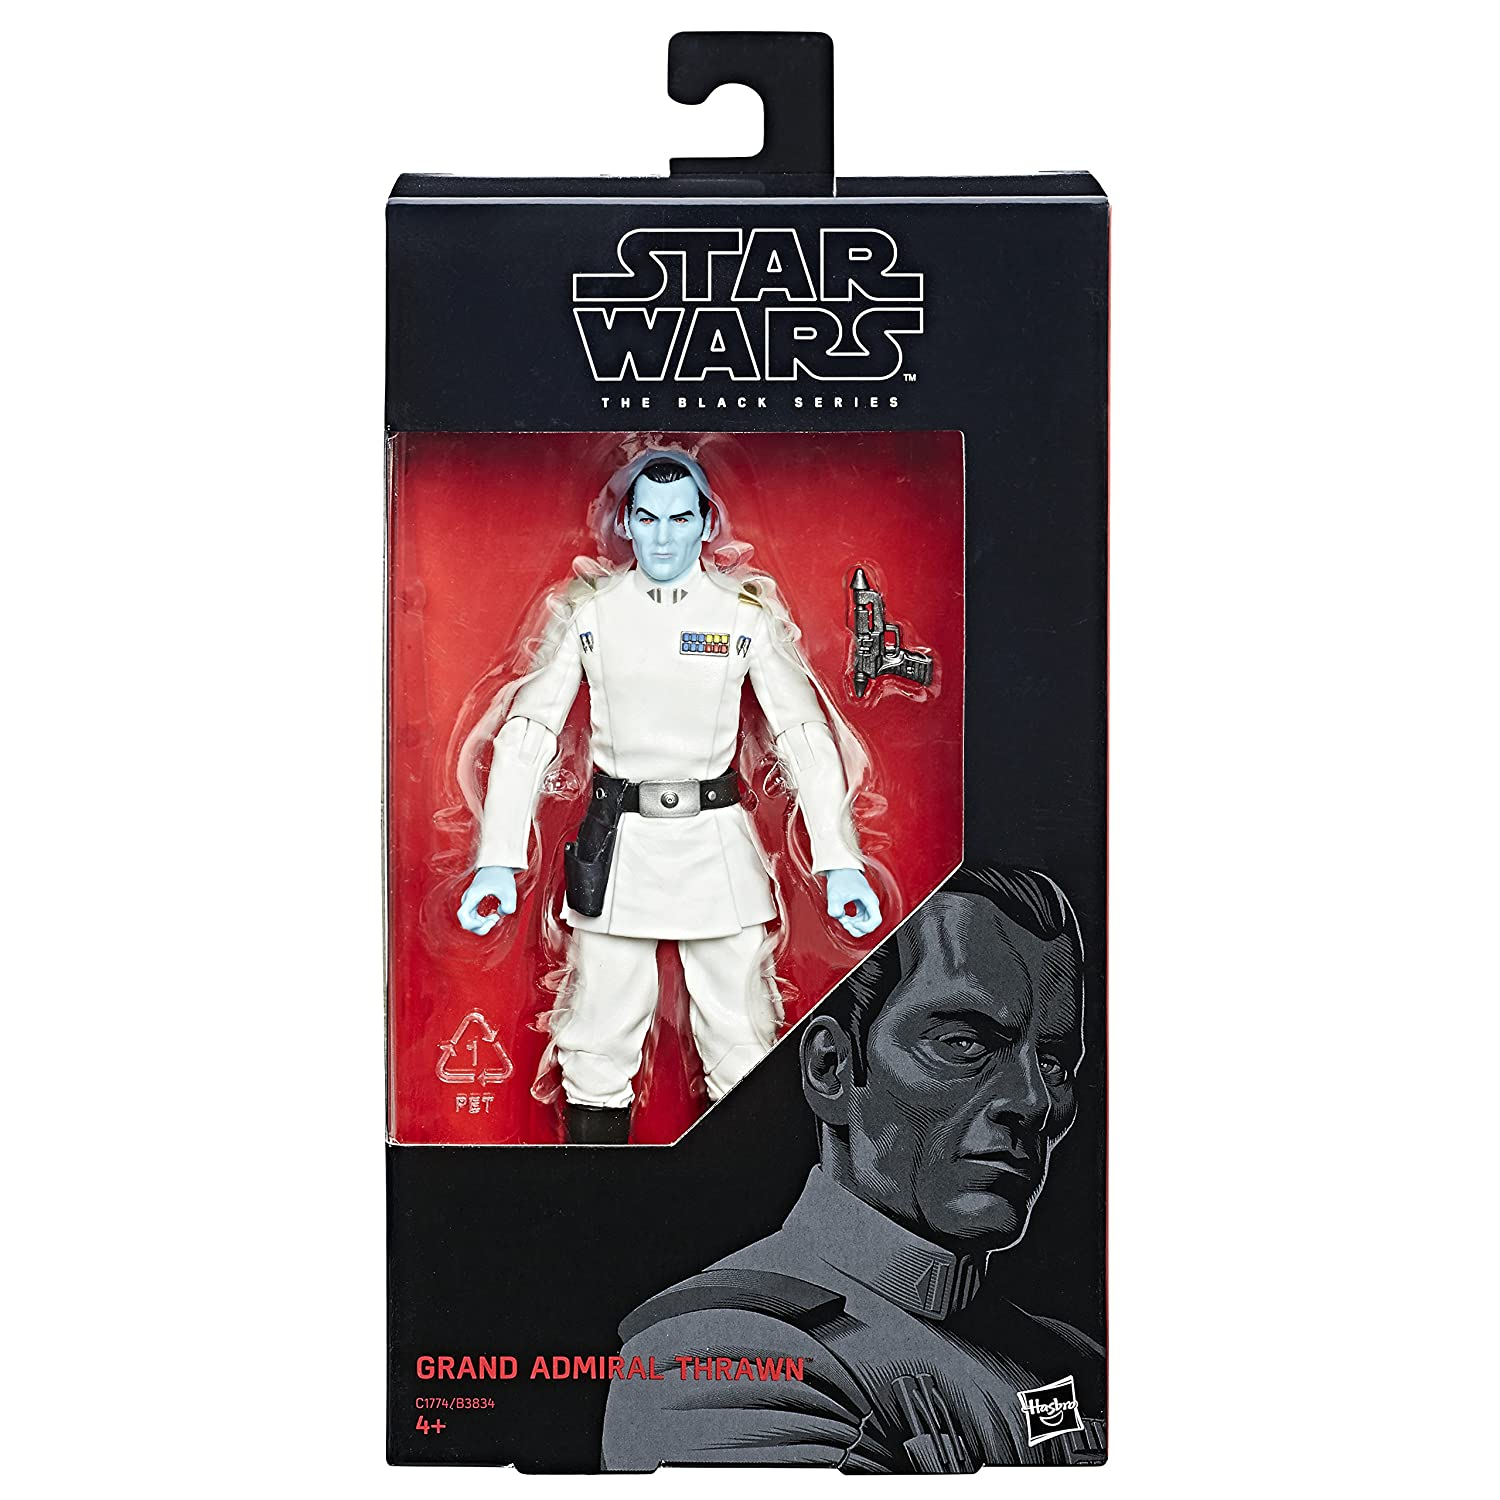 Hasbro Star Wars C1774ES0 - Rebels The Black Series 6 Zoll Figur: General Thrawn, Actionfigur